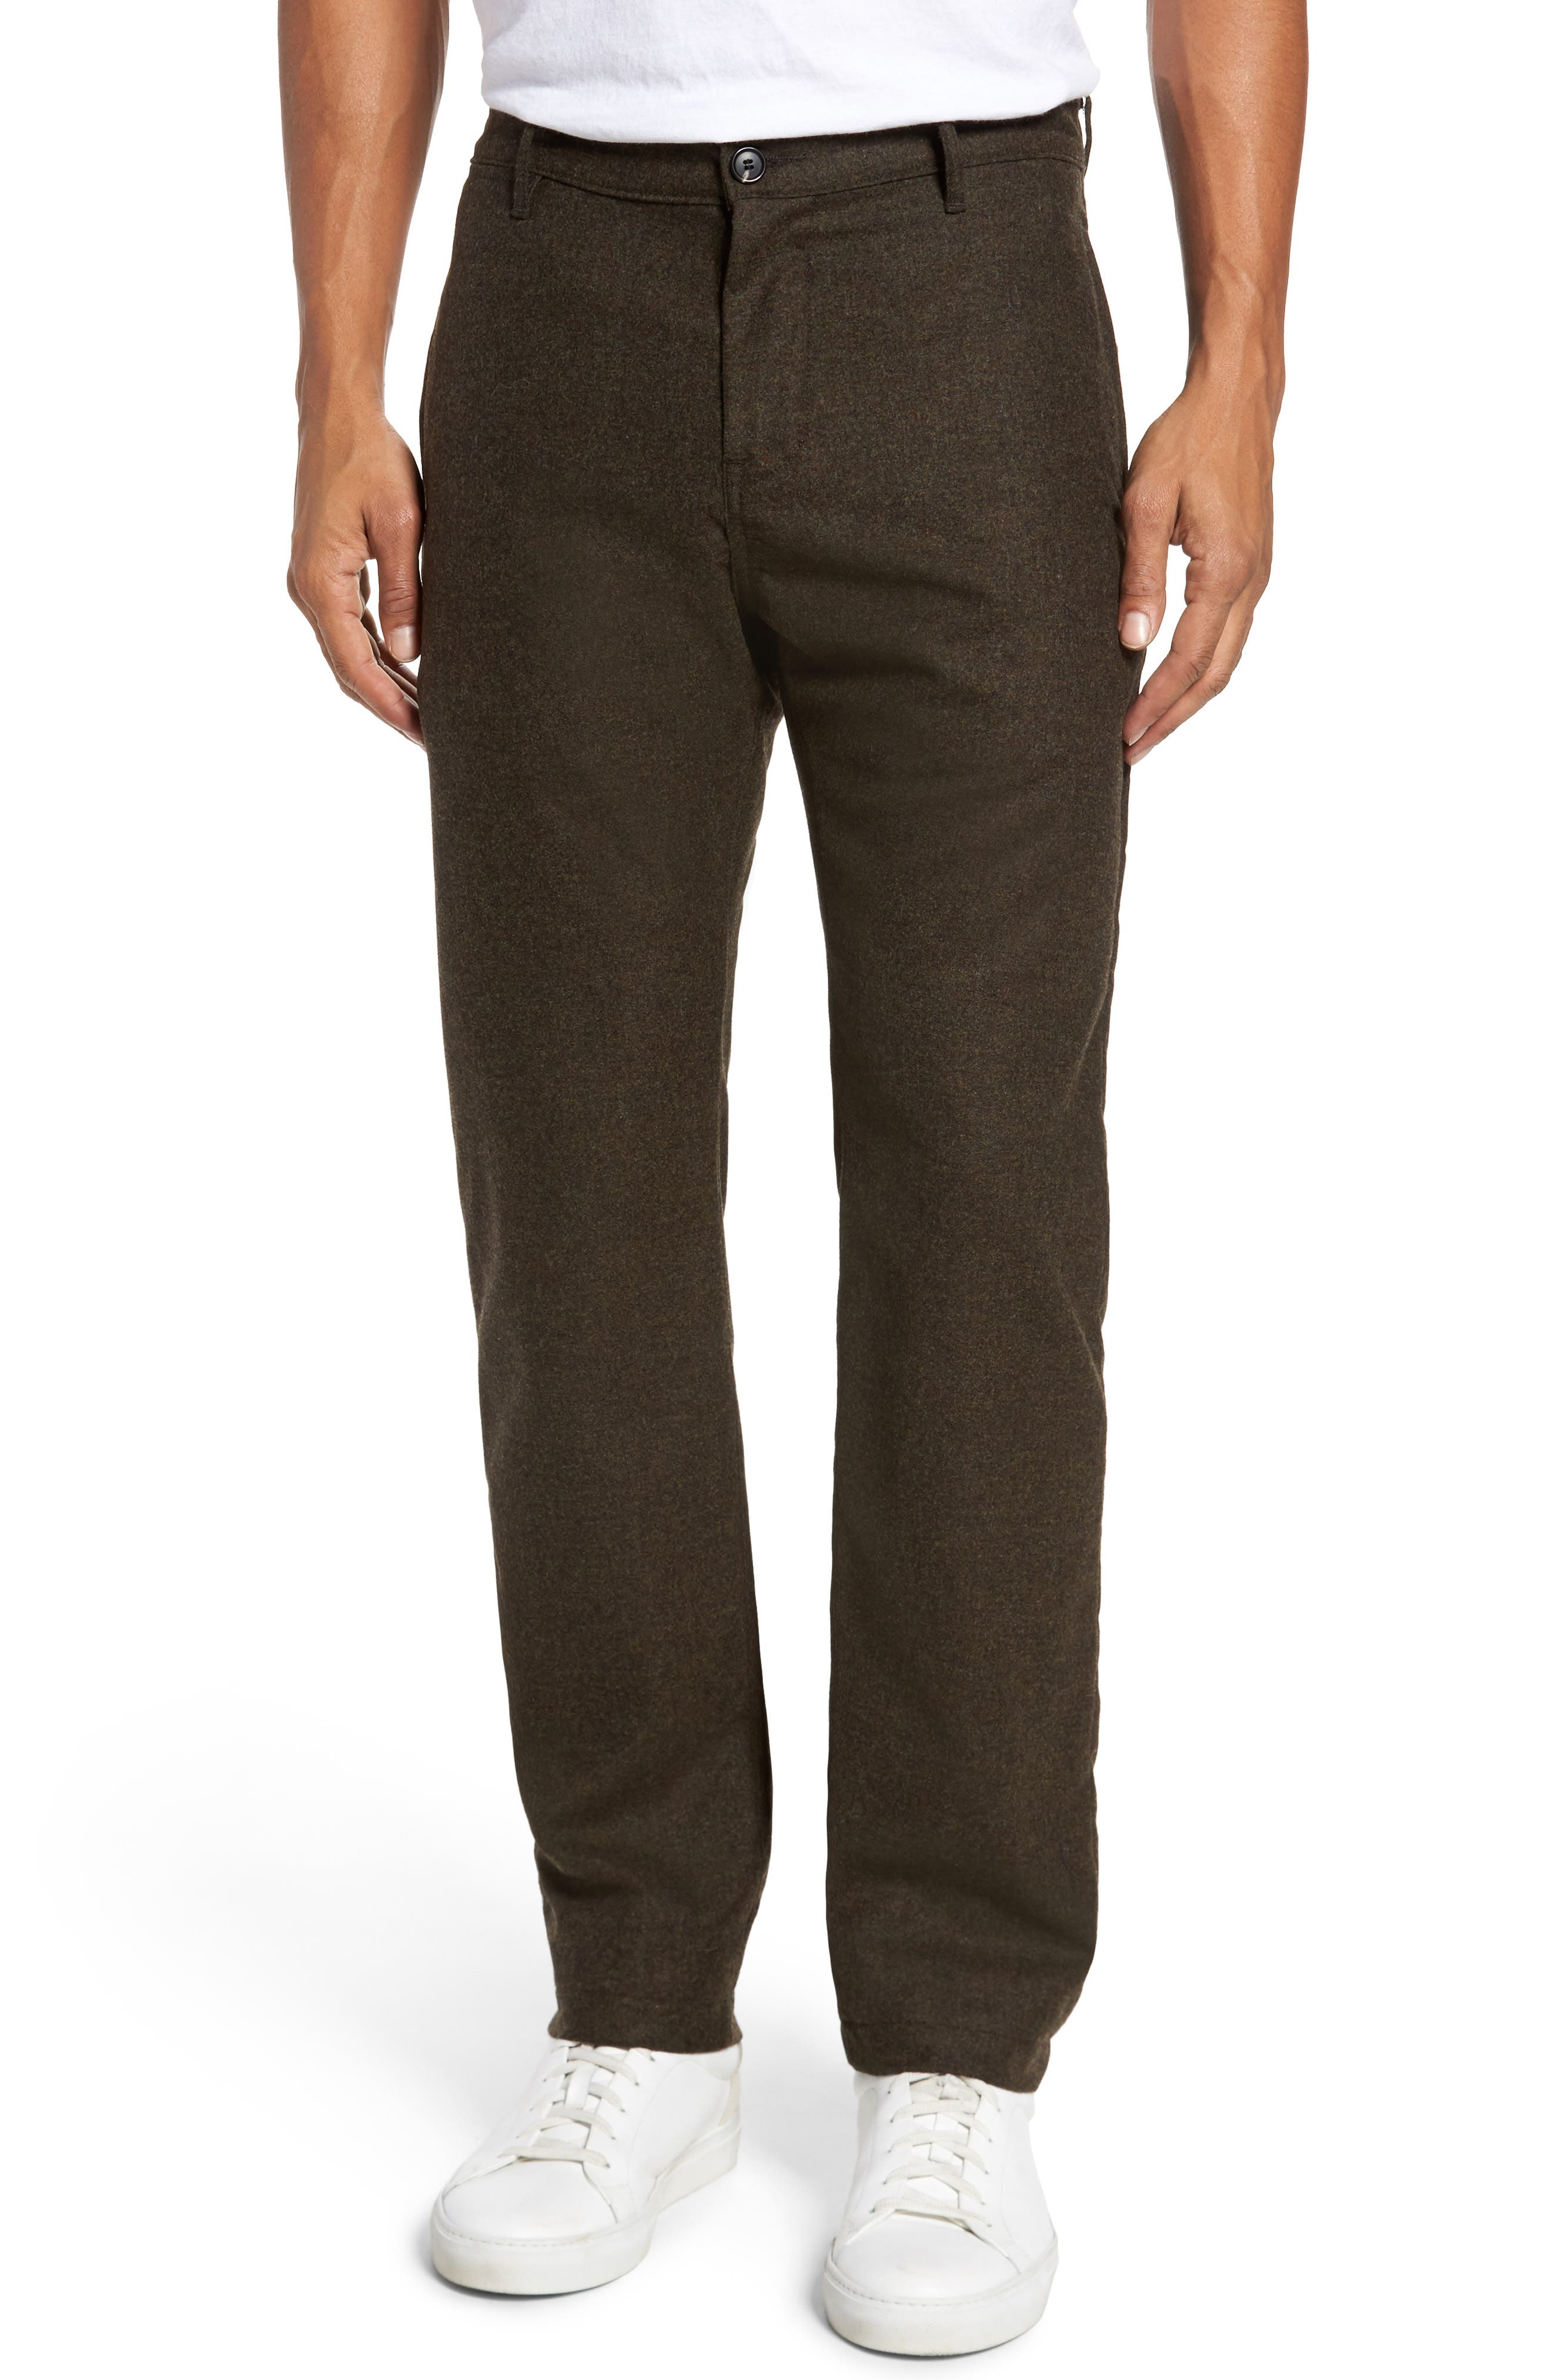 Wool & Cashmere Slim Straight Leg Chinos,                             Main thumbnail 1, color,                             Military